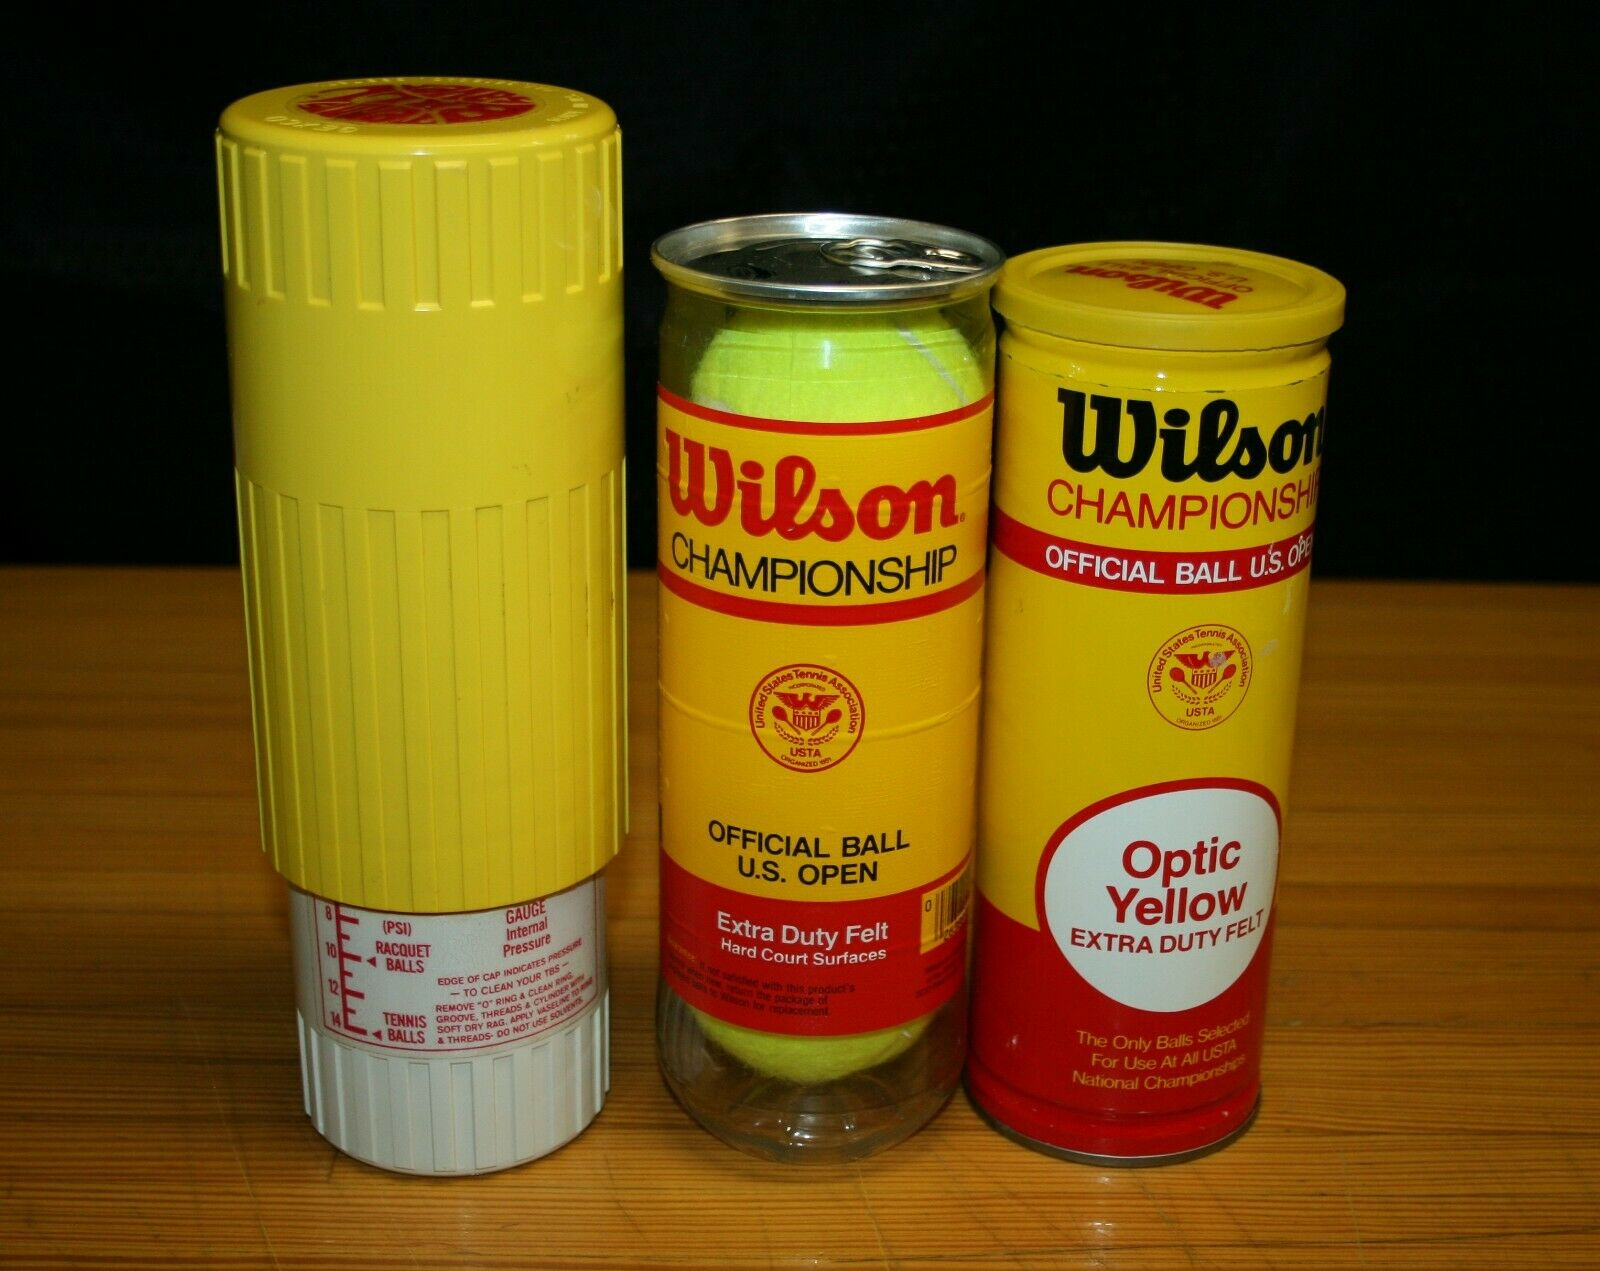 GEXCO TENNIS BALL SAVER + 2 CANS SLEEVES TUBES WILSON CHAMPIONSHIP TENNIS BALLS